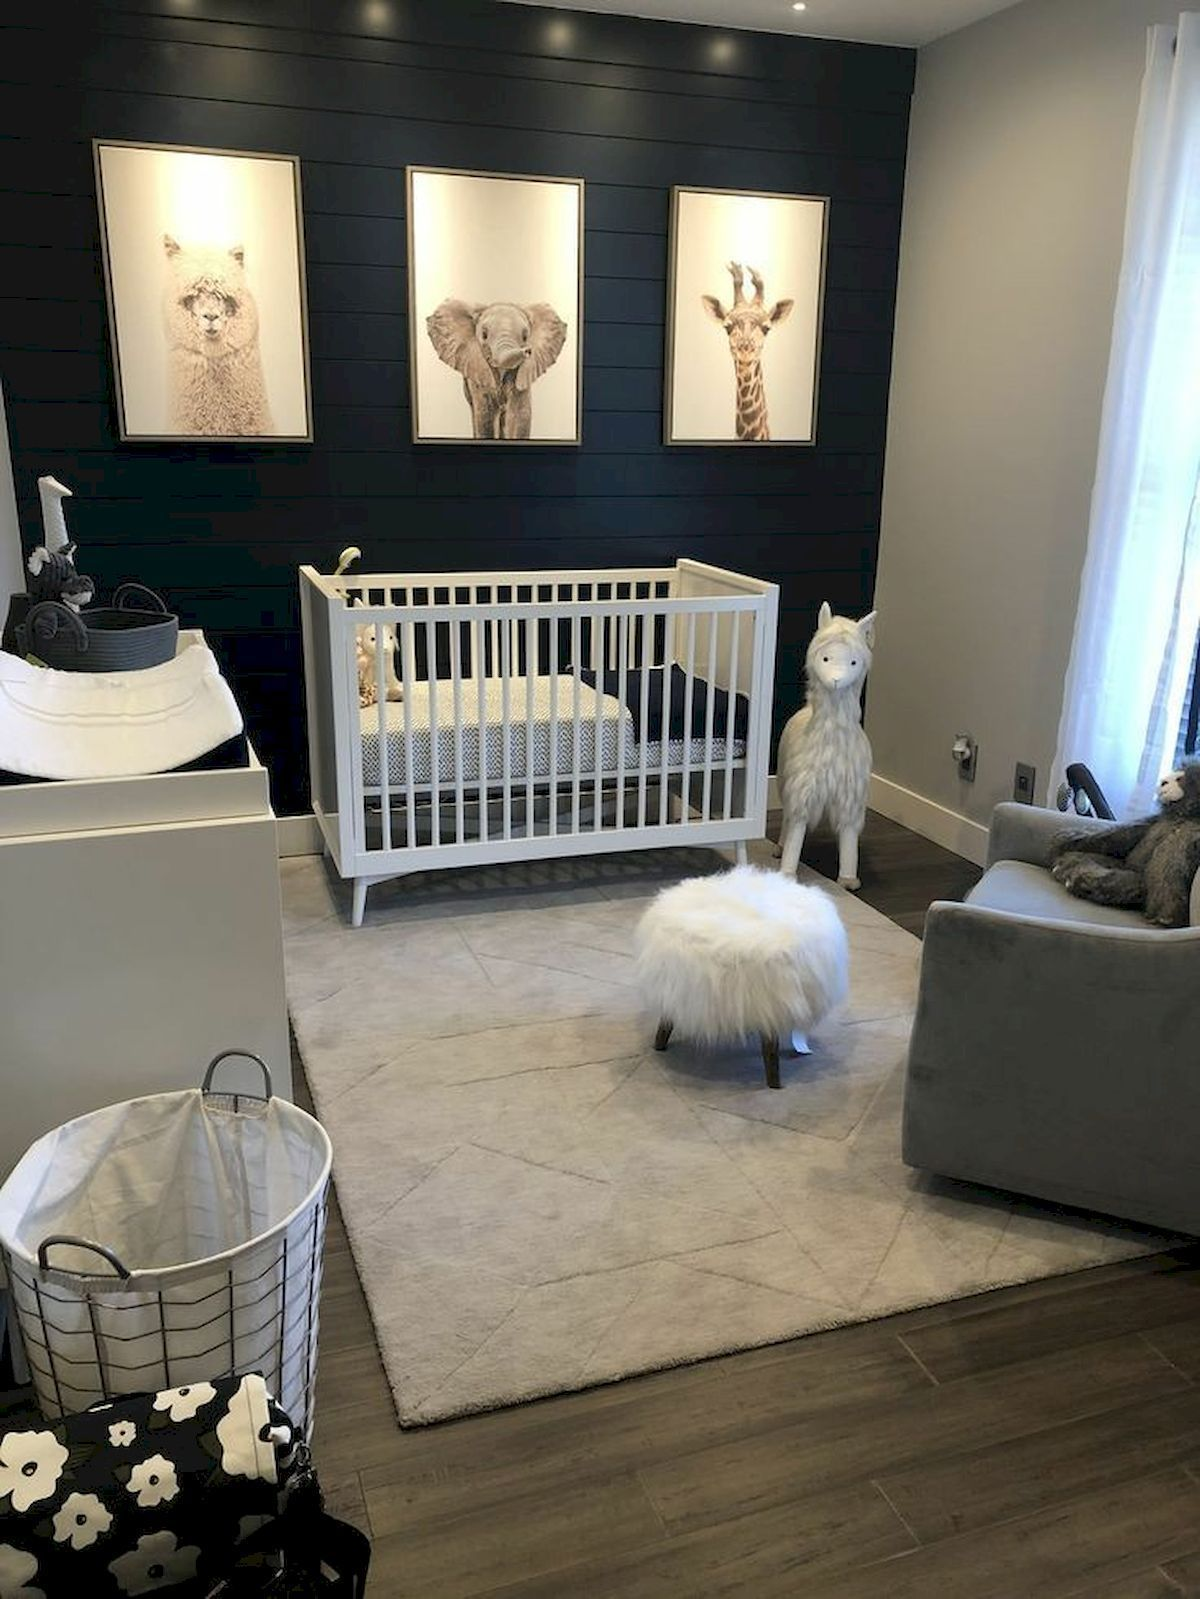 50 Cute Nursery Ideas For Baby Boy Your Baby Boy Deserves To Be